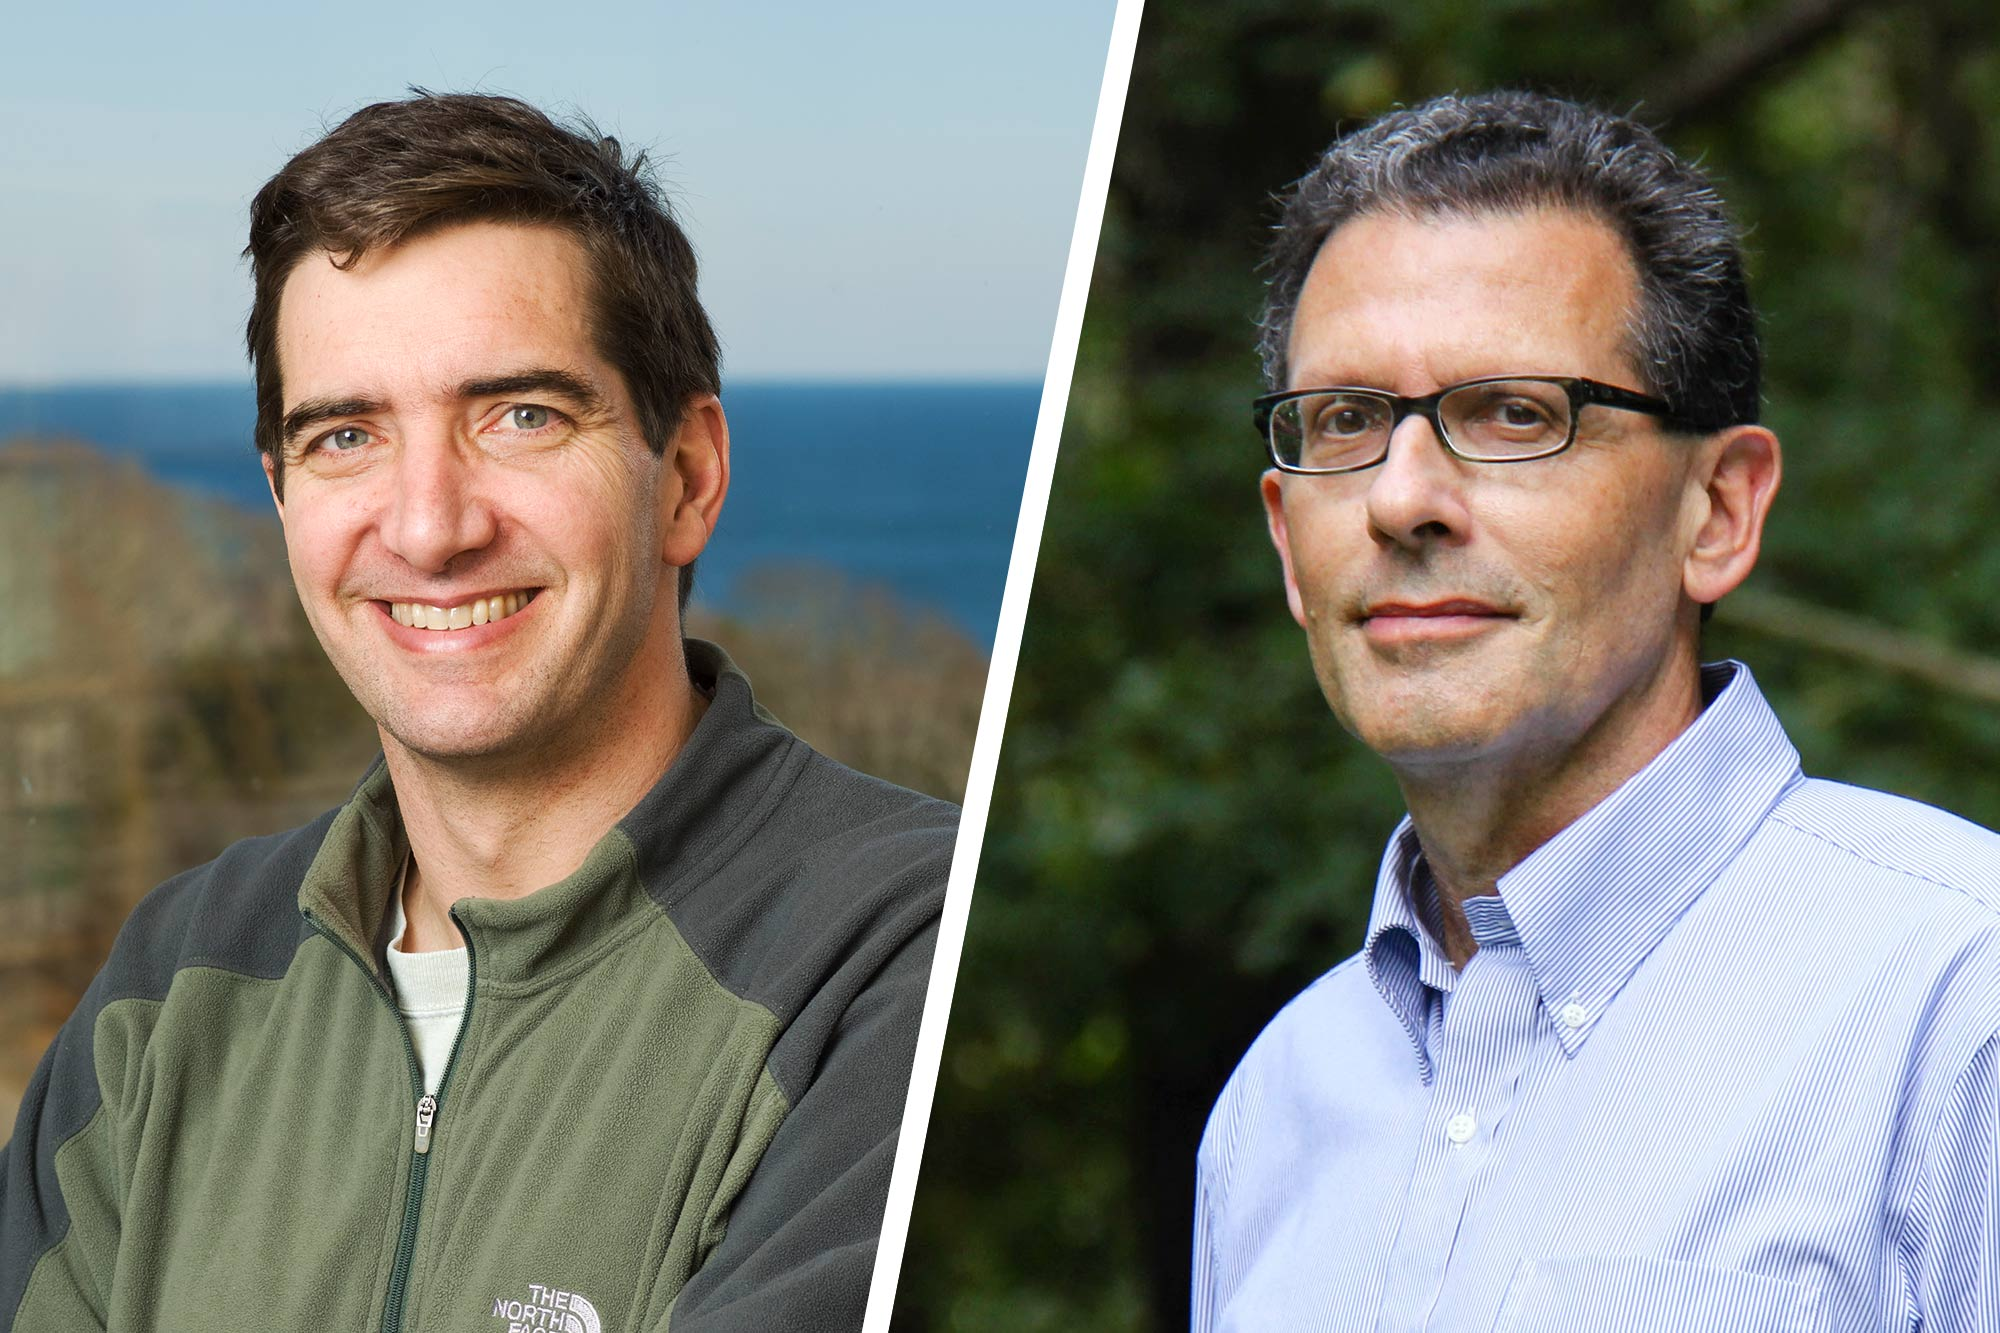 Marine chemistry researcher Scott C. Doney, left, comes to UVA from the Woods Hole Oceanographic Institution. Eco-hydrologist Lawrence E. Band formerly taught and researched at the University of North Carolina-Chapel Hill.